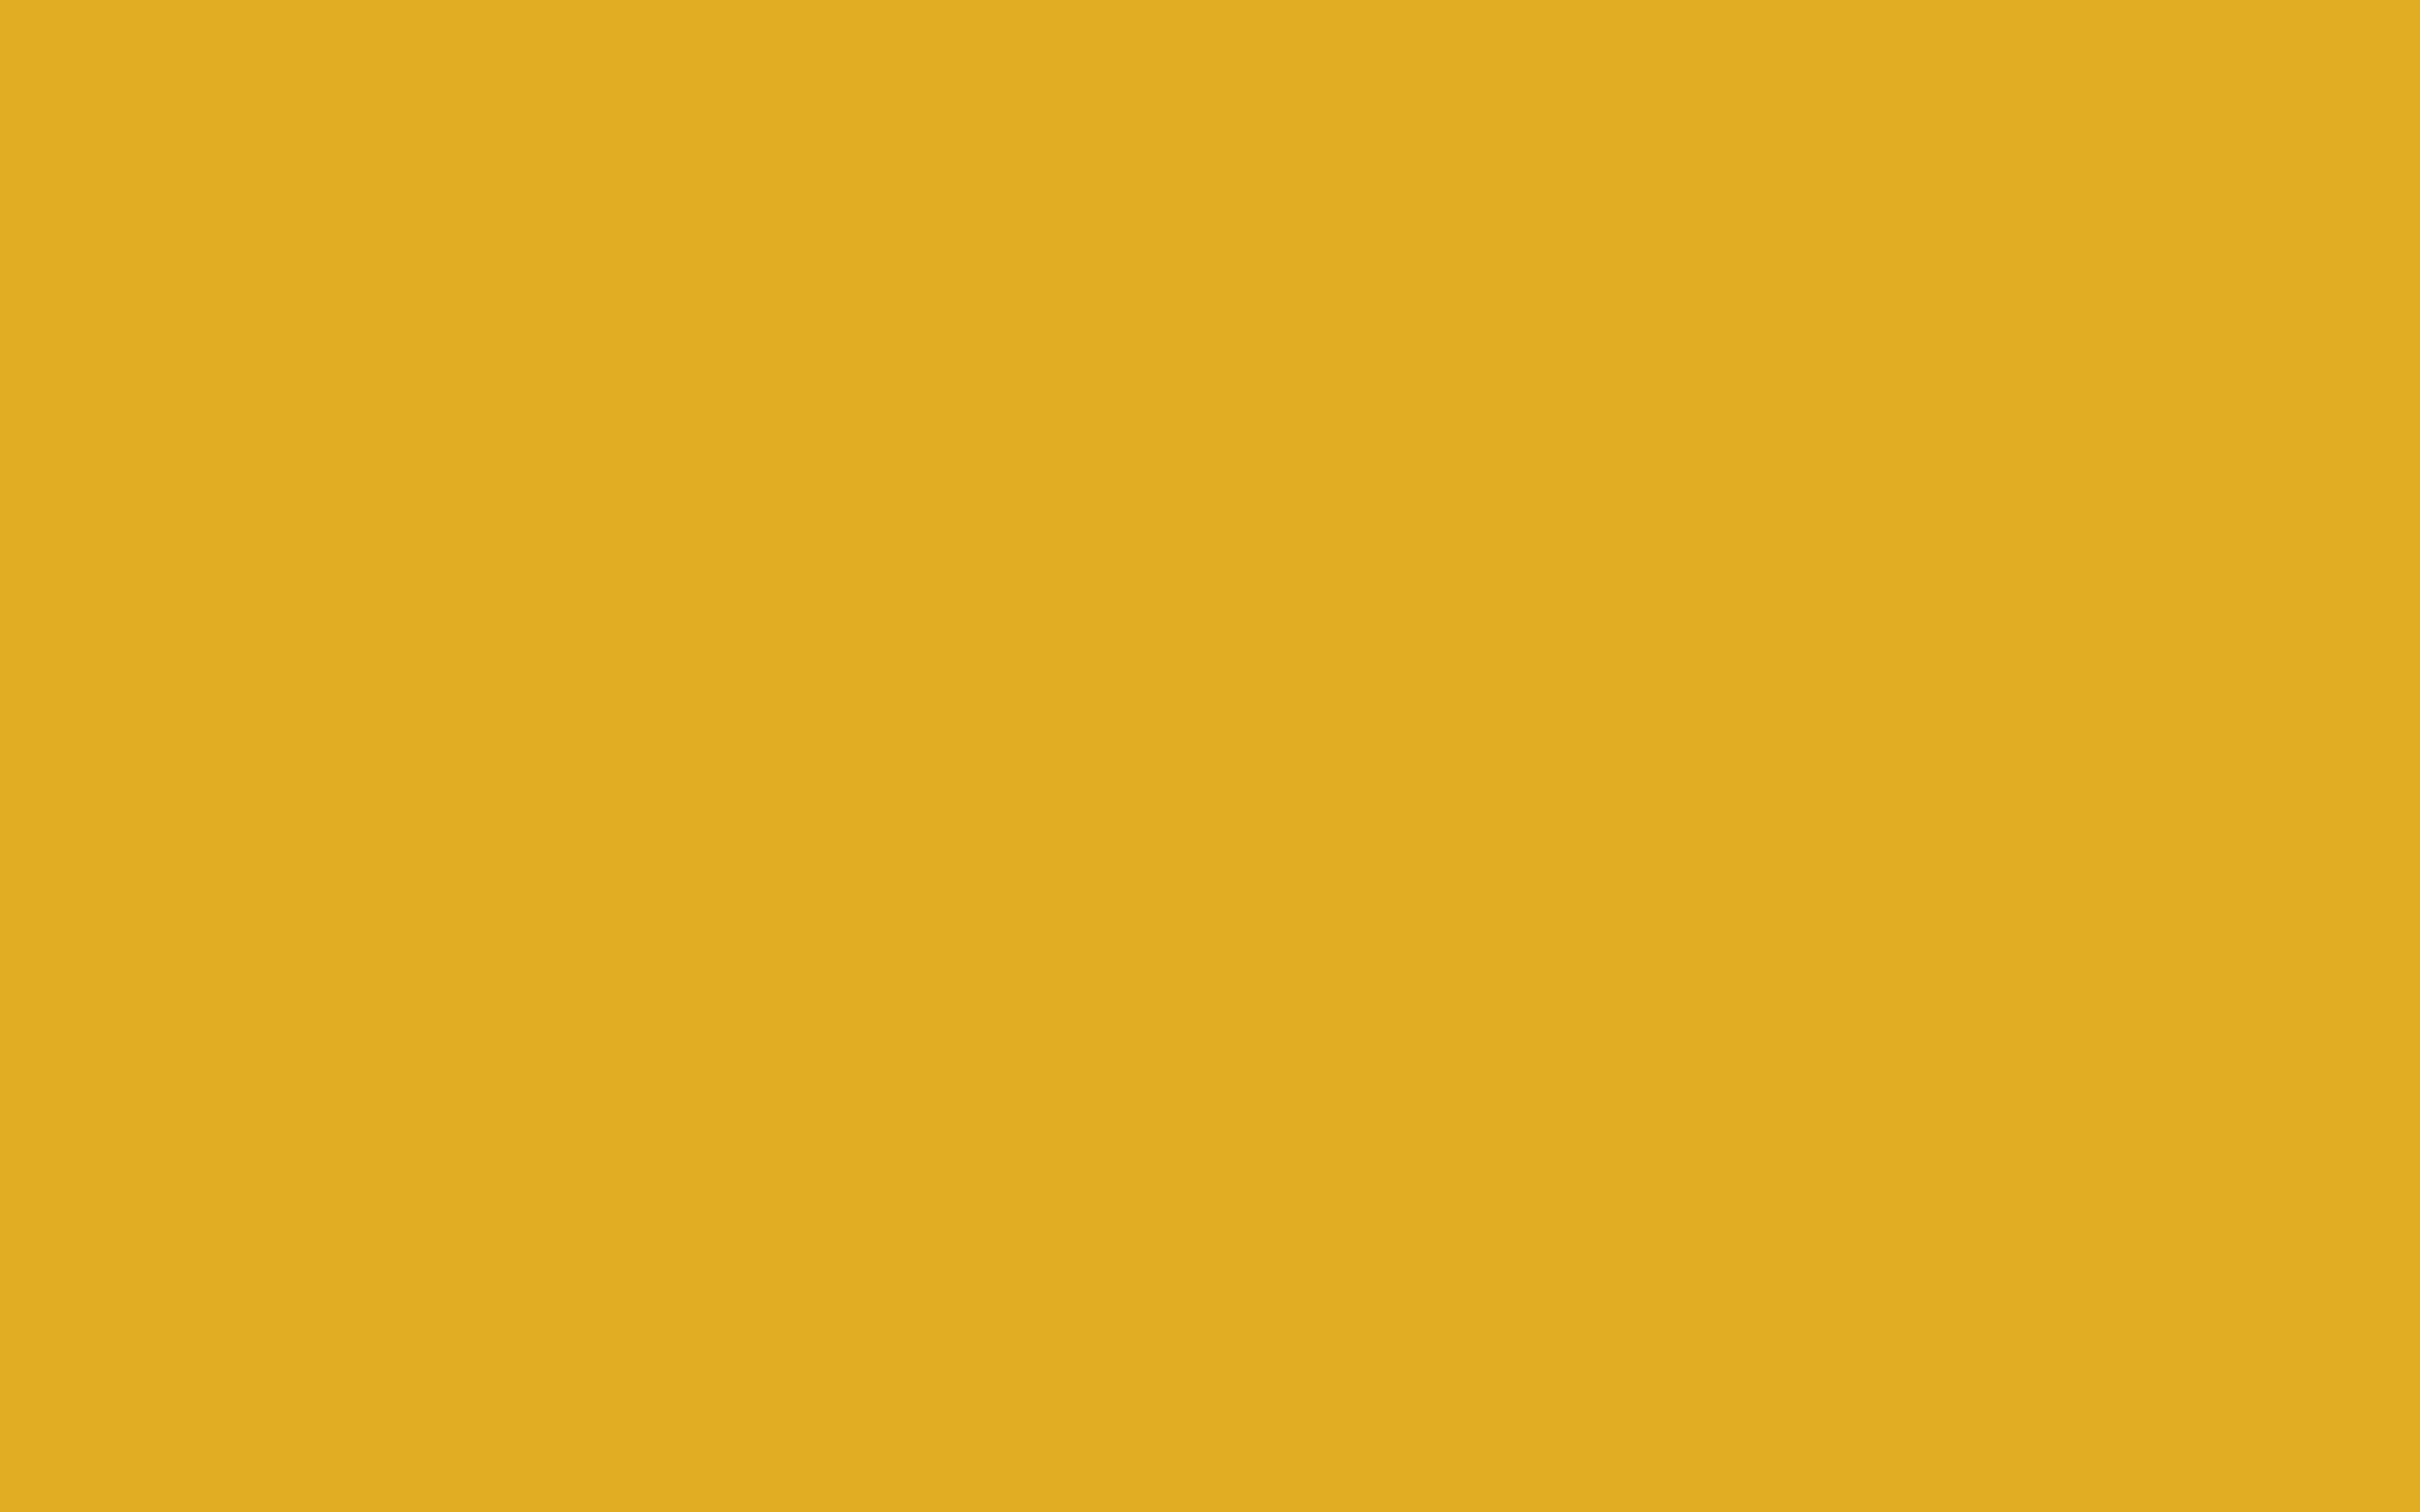 2560x1600 Urobilin Solid Color Background